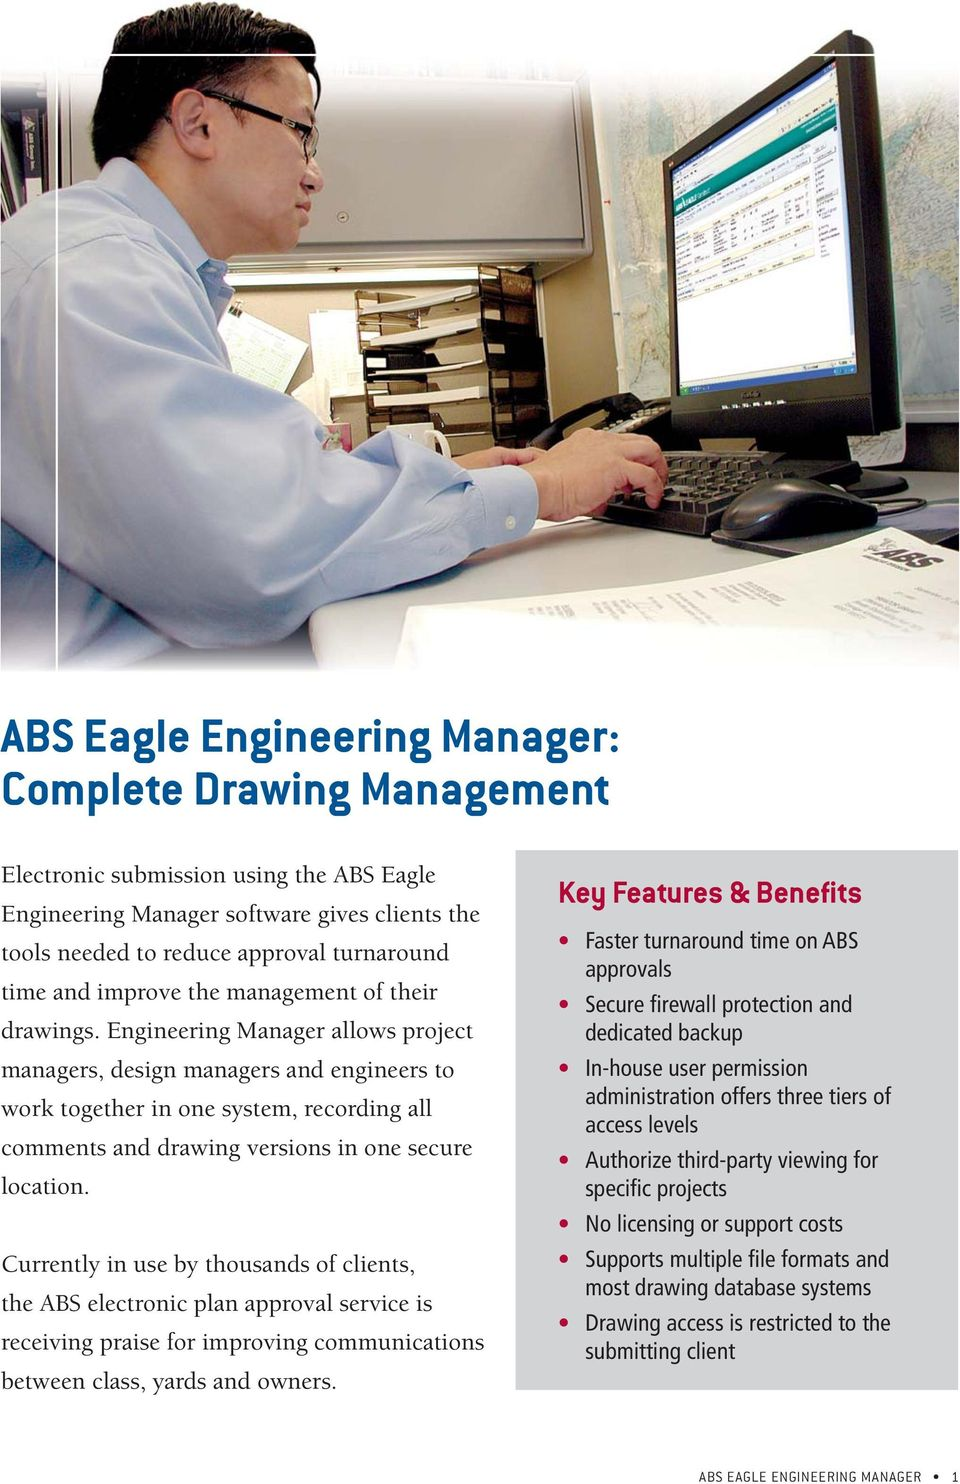 ABS Eagle Engineering Manager - PDF